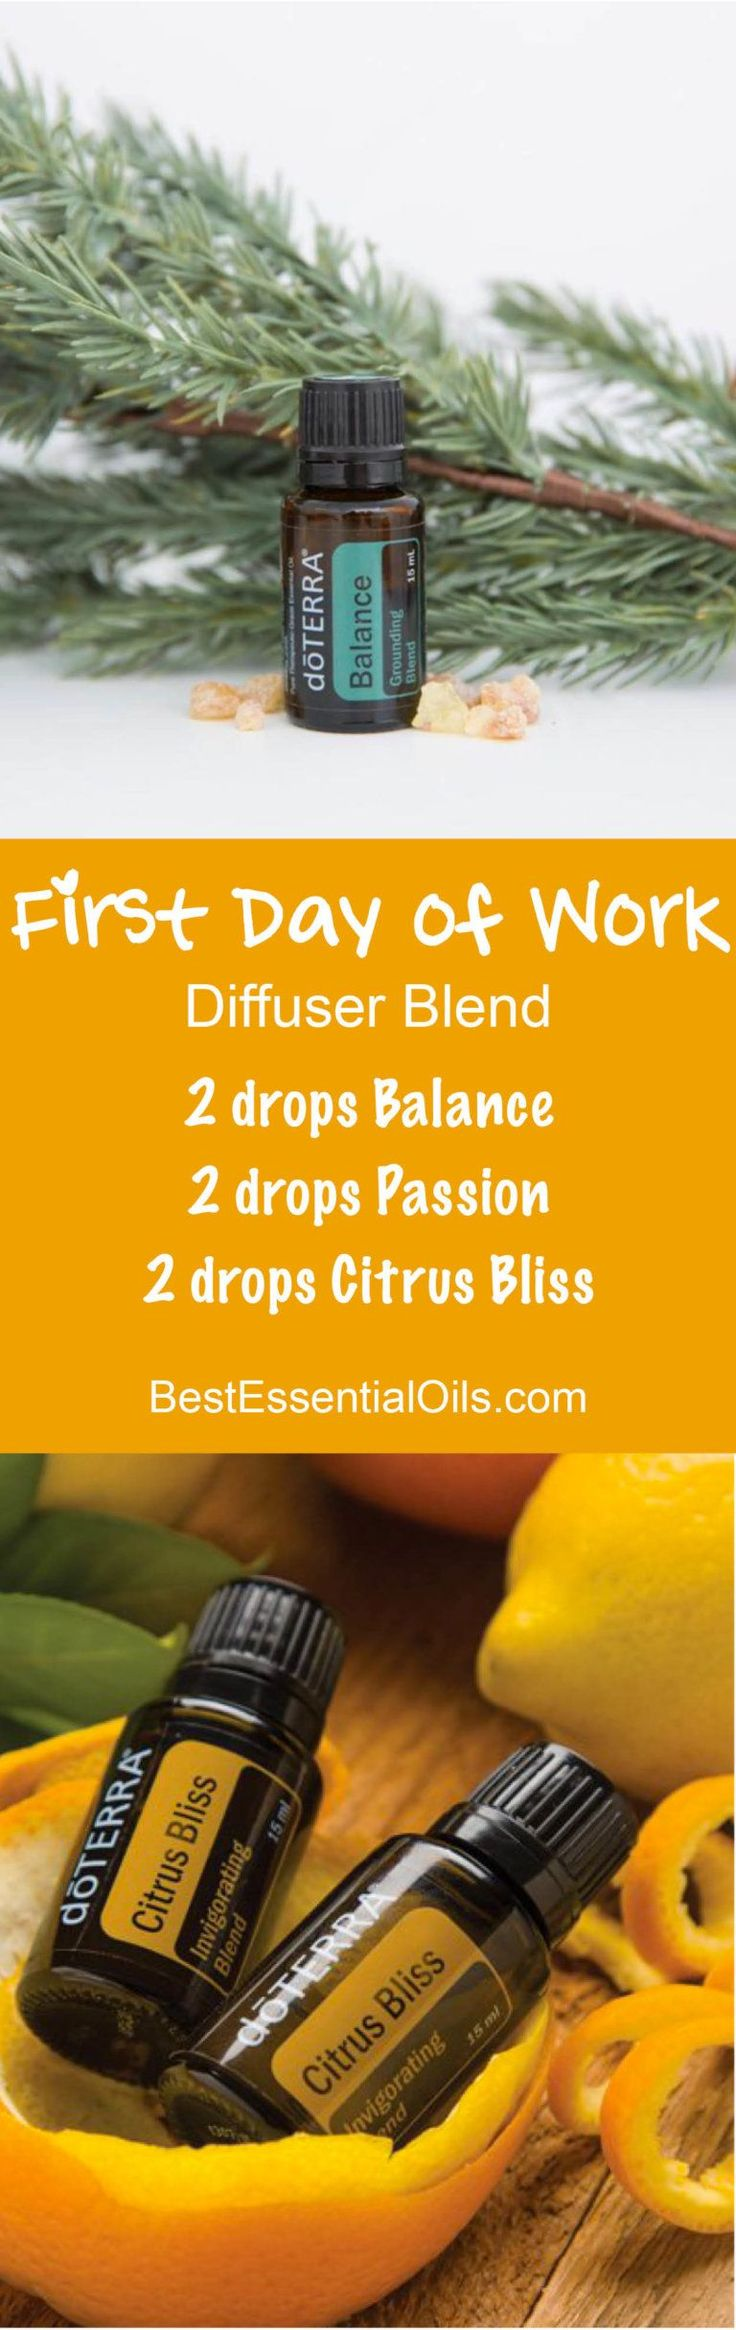 First Day of Work doTERRA Diffuser Blend